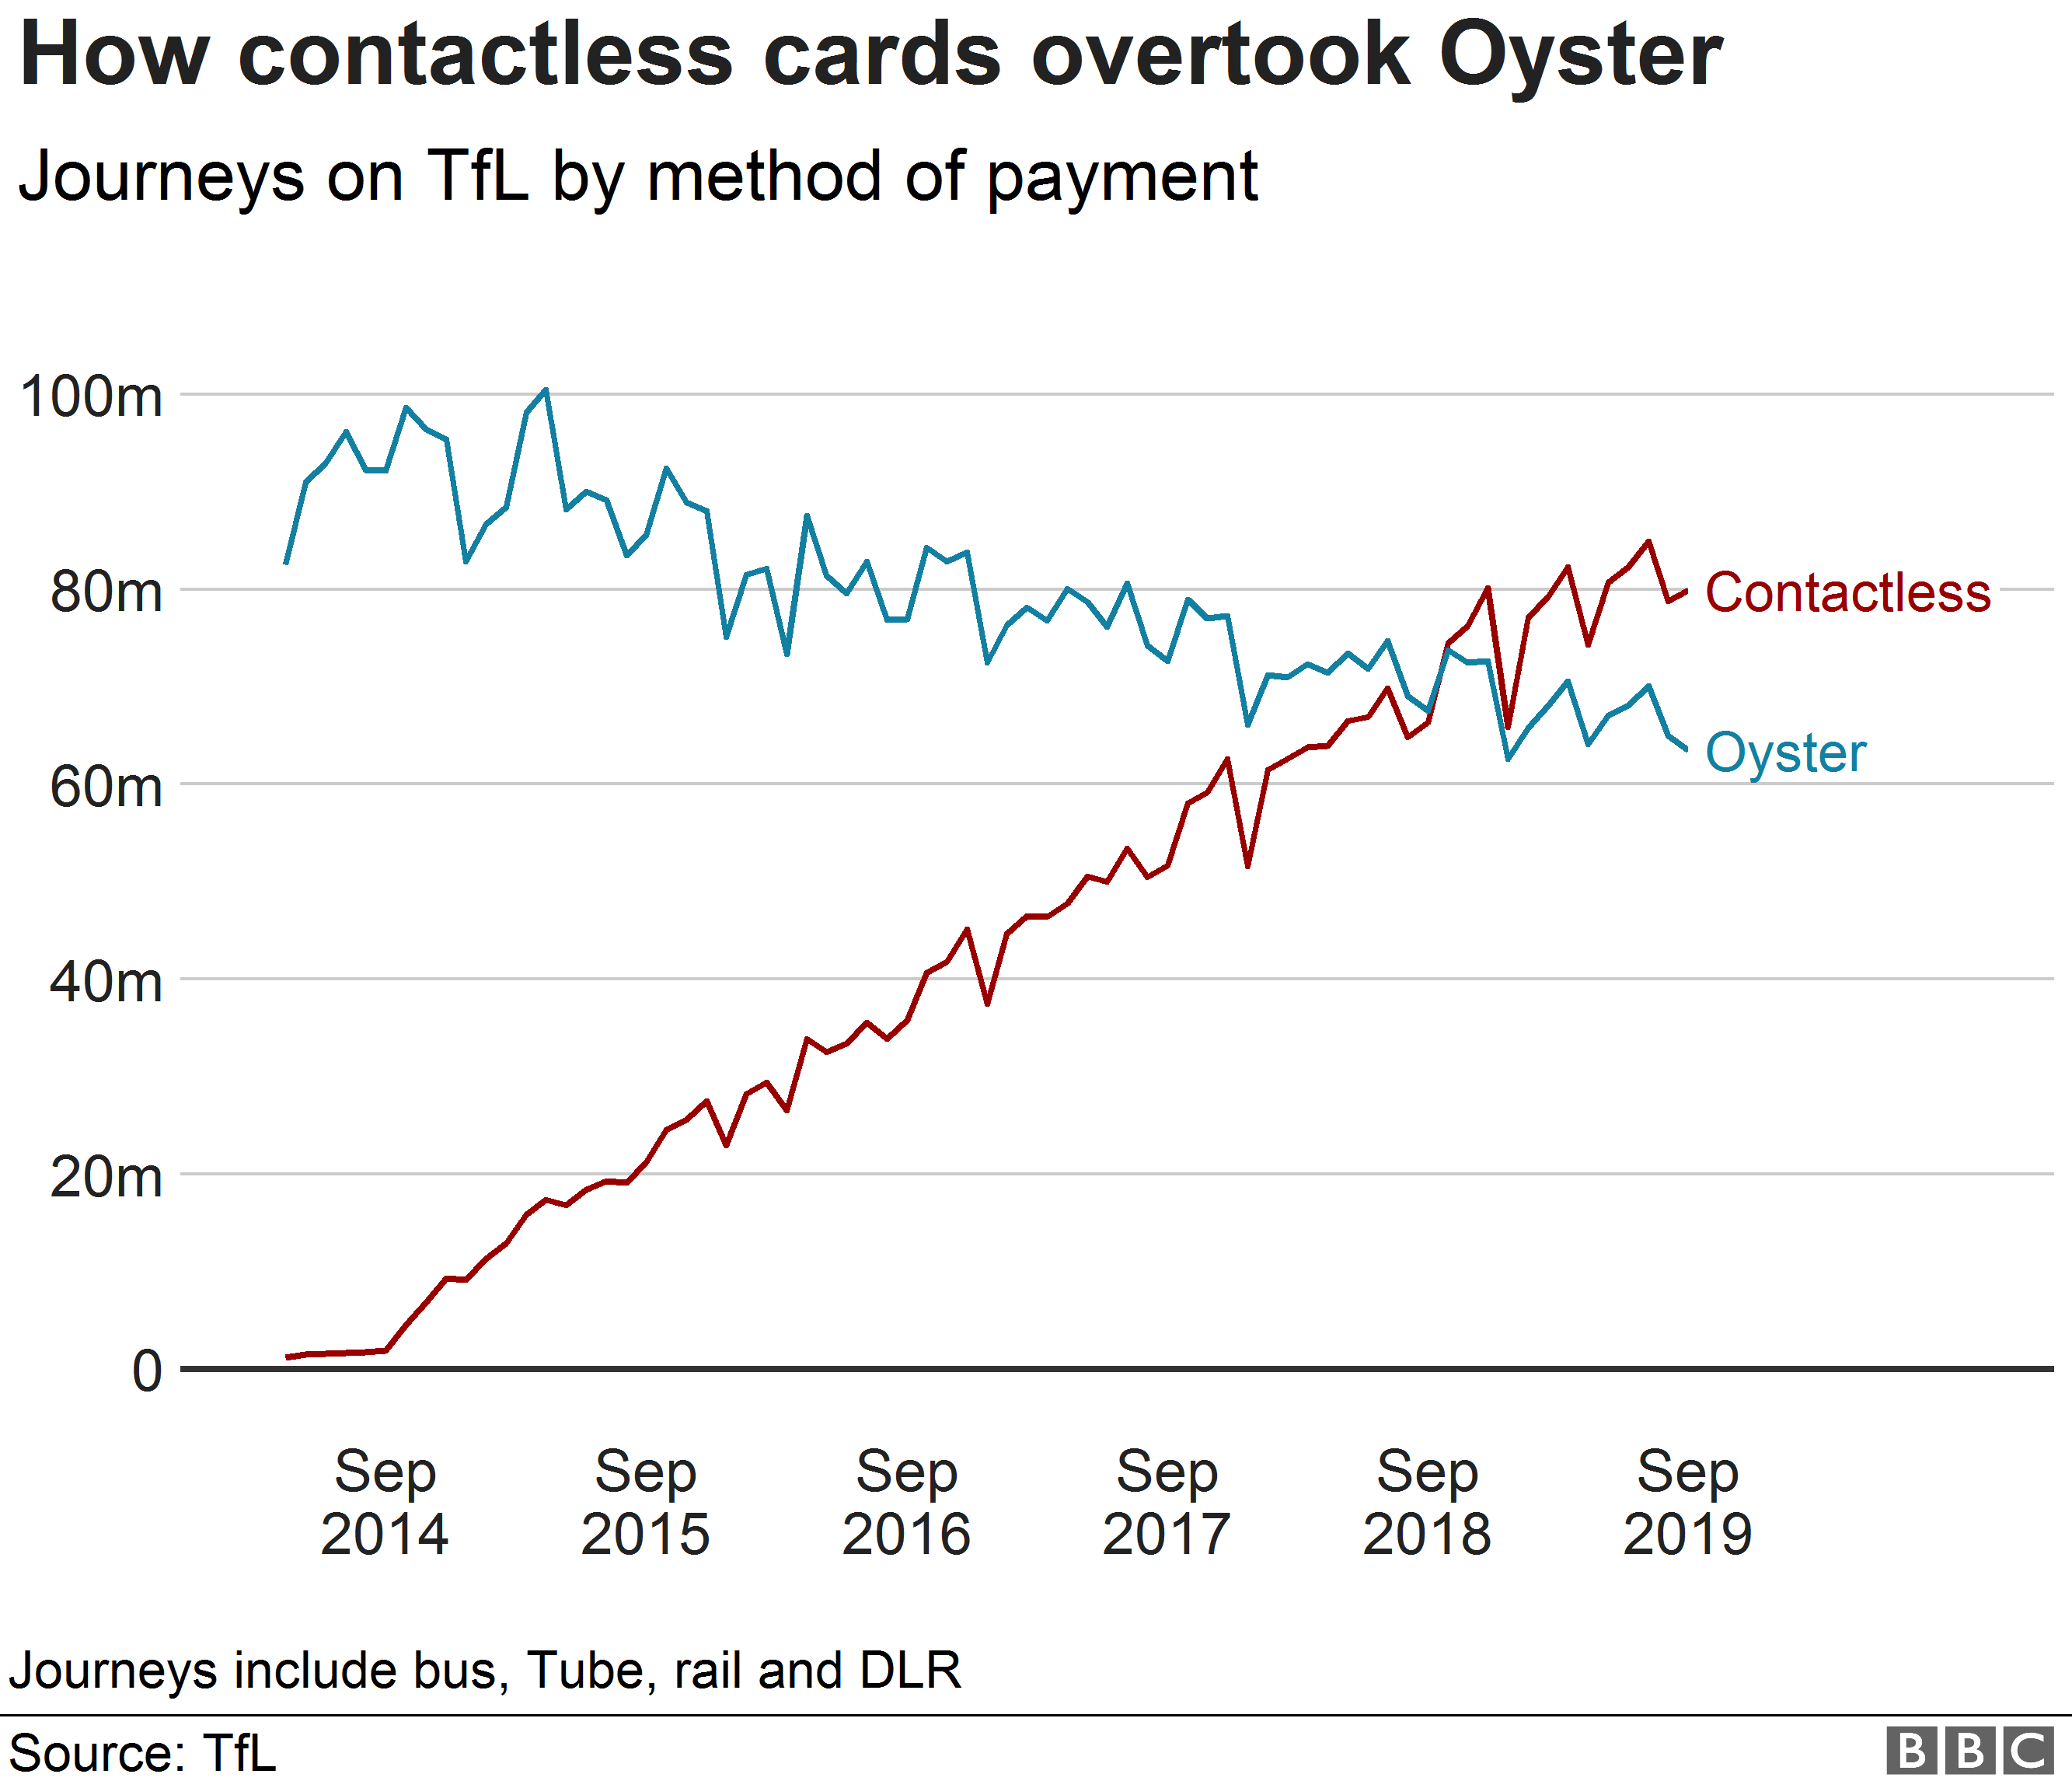 Chart showing the growth of contactless and decline of Oyster